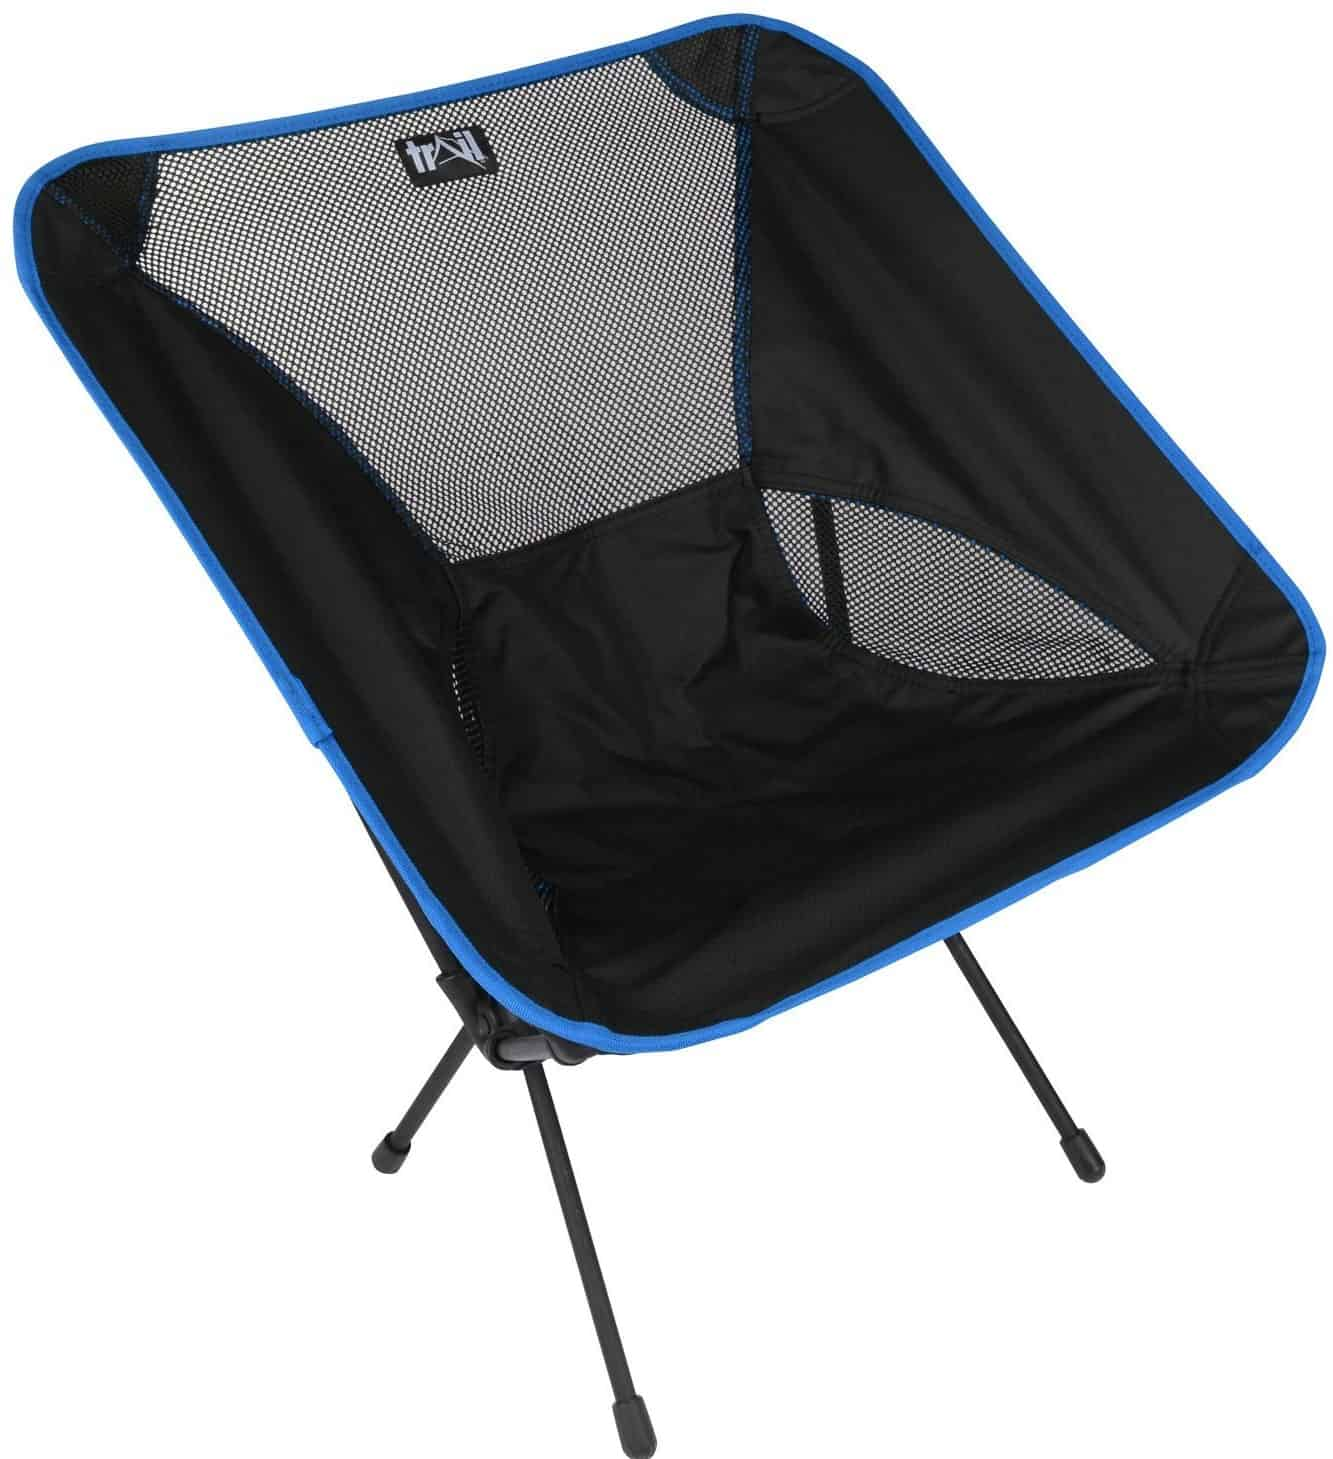 best fishing chair 2017 uk diy adirondack kit camping reviews what are the chairs